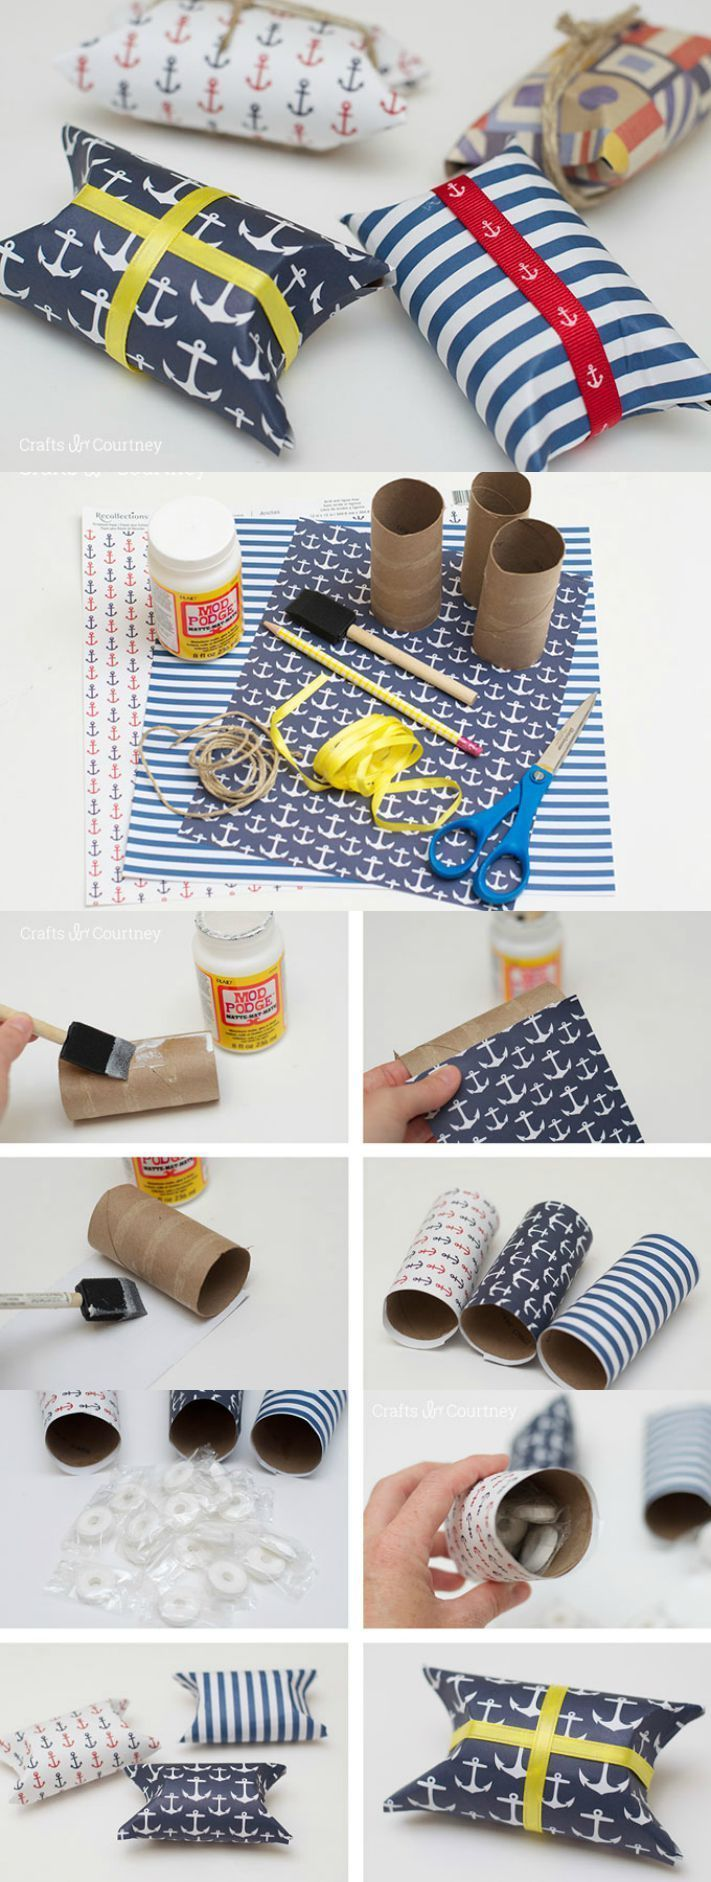 These simple and cute DIY party favors are so easy to make and can be customized to go with any theme as long as you can find the scrapbook paper!